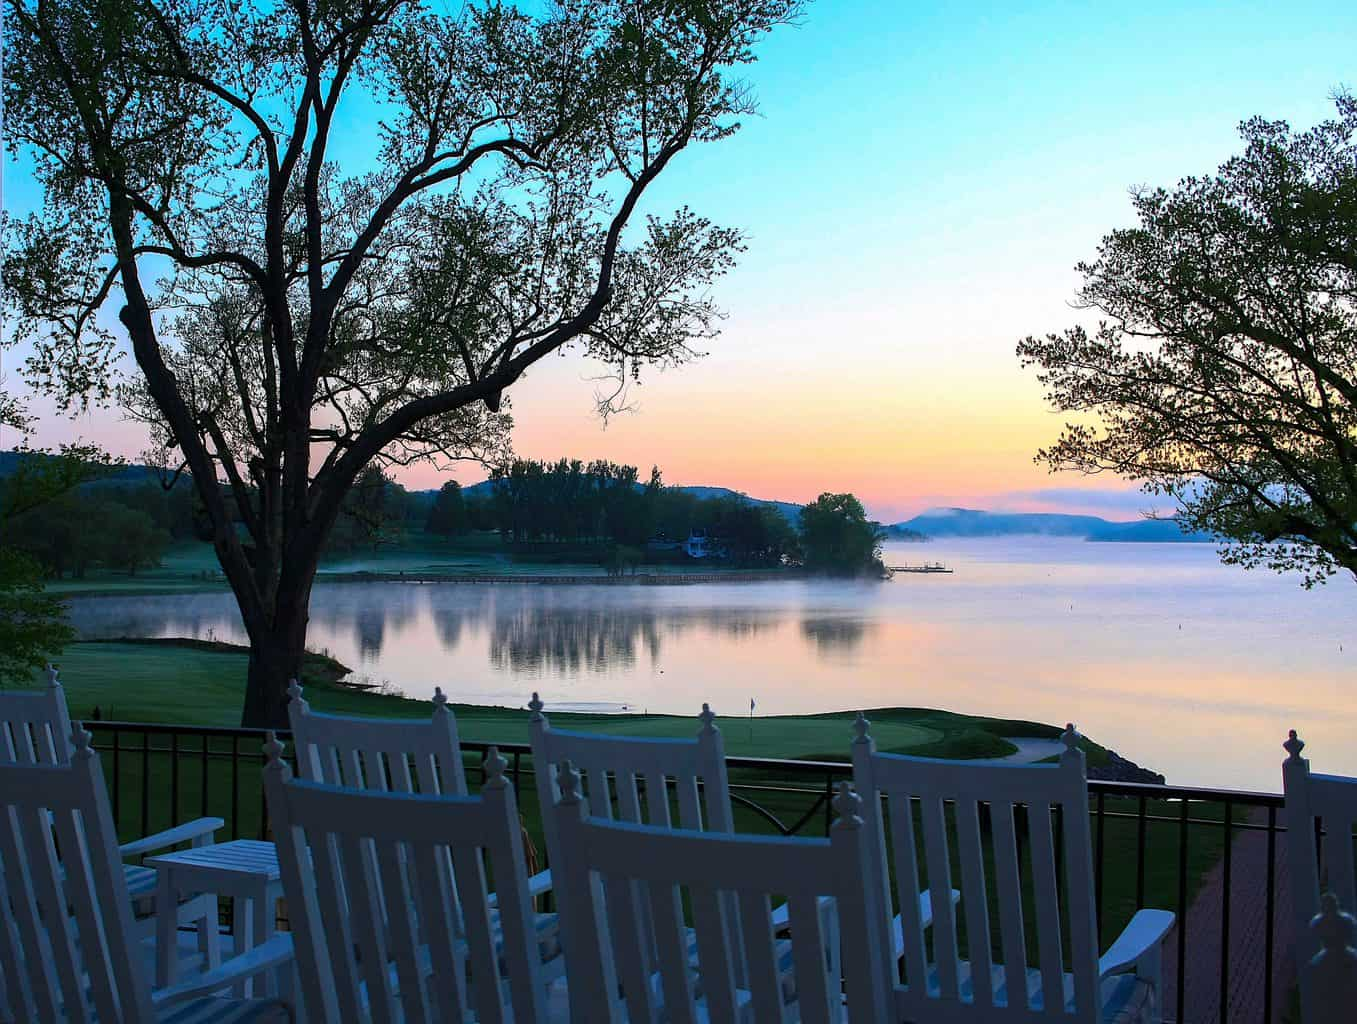 The beautiful view overlooking the lake from the back of the luxurious, Otesaga Resort in Cooperstown, NY.